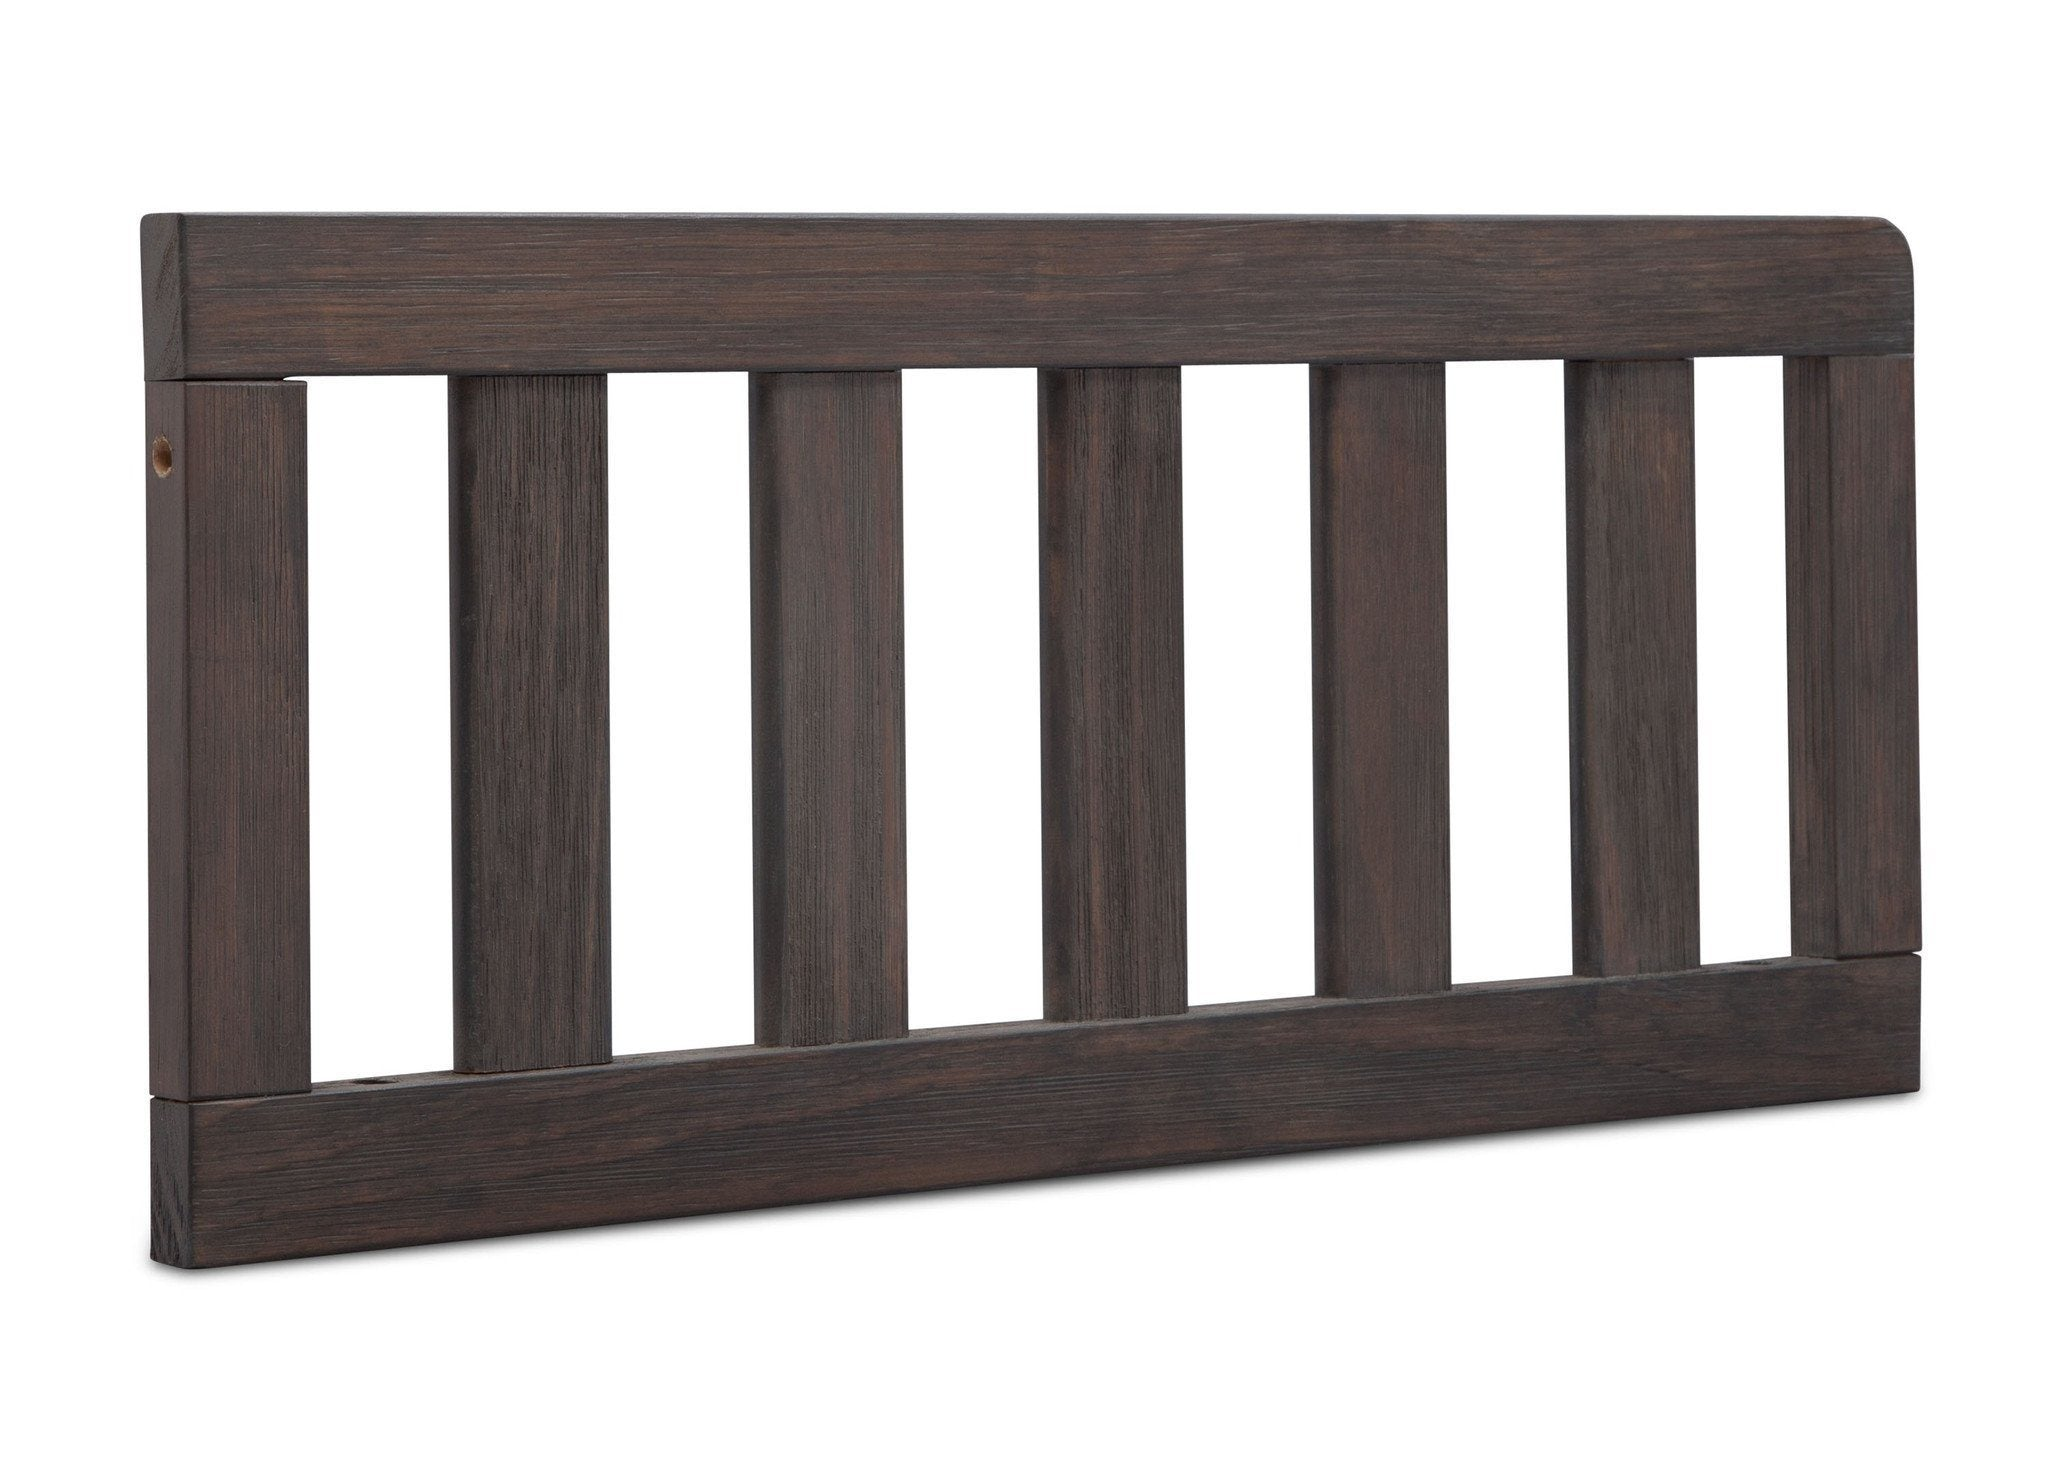 Simmons Kids Rustic Grey (084) Toddler Guardrail (180129), Angled View a1a